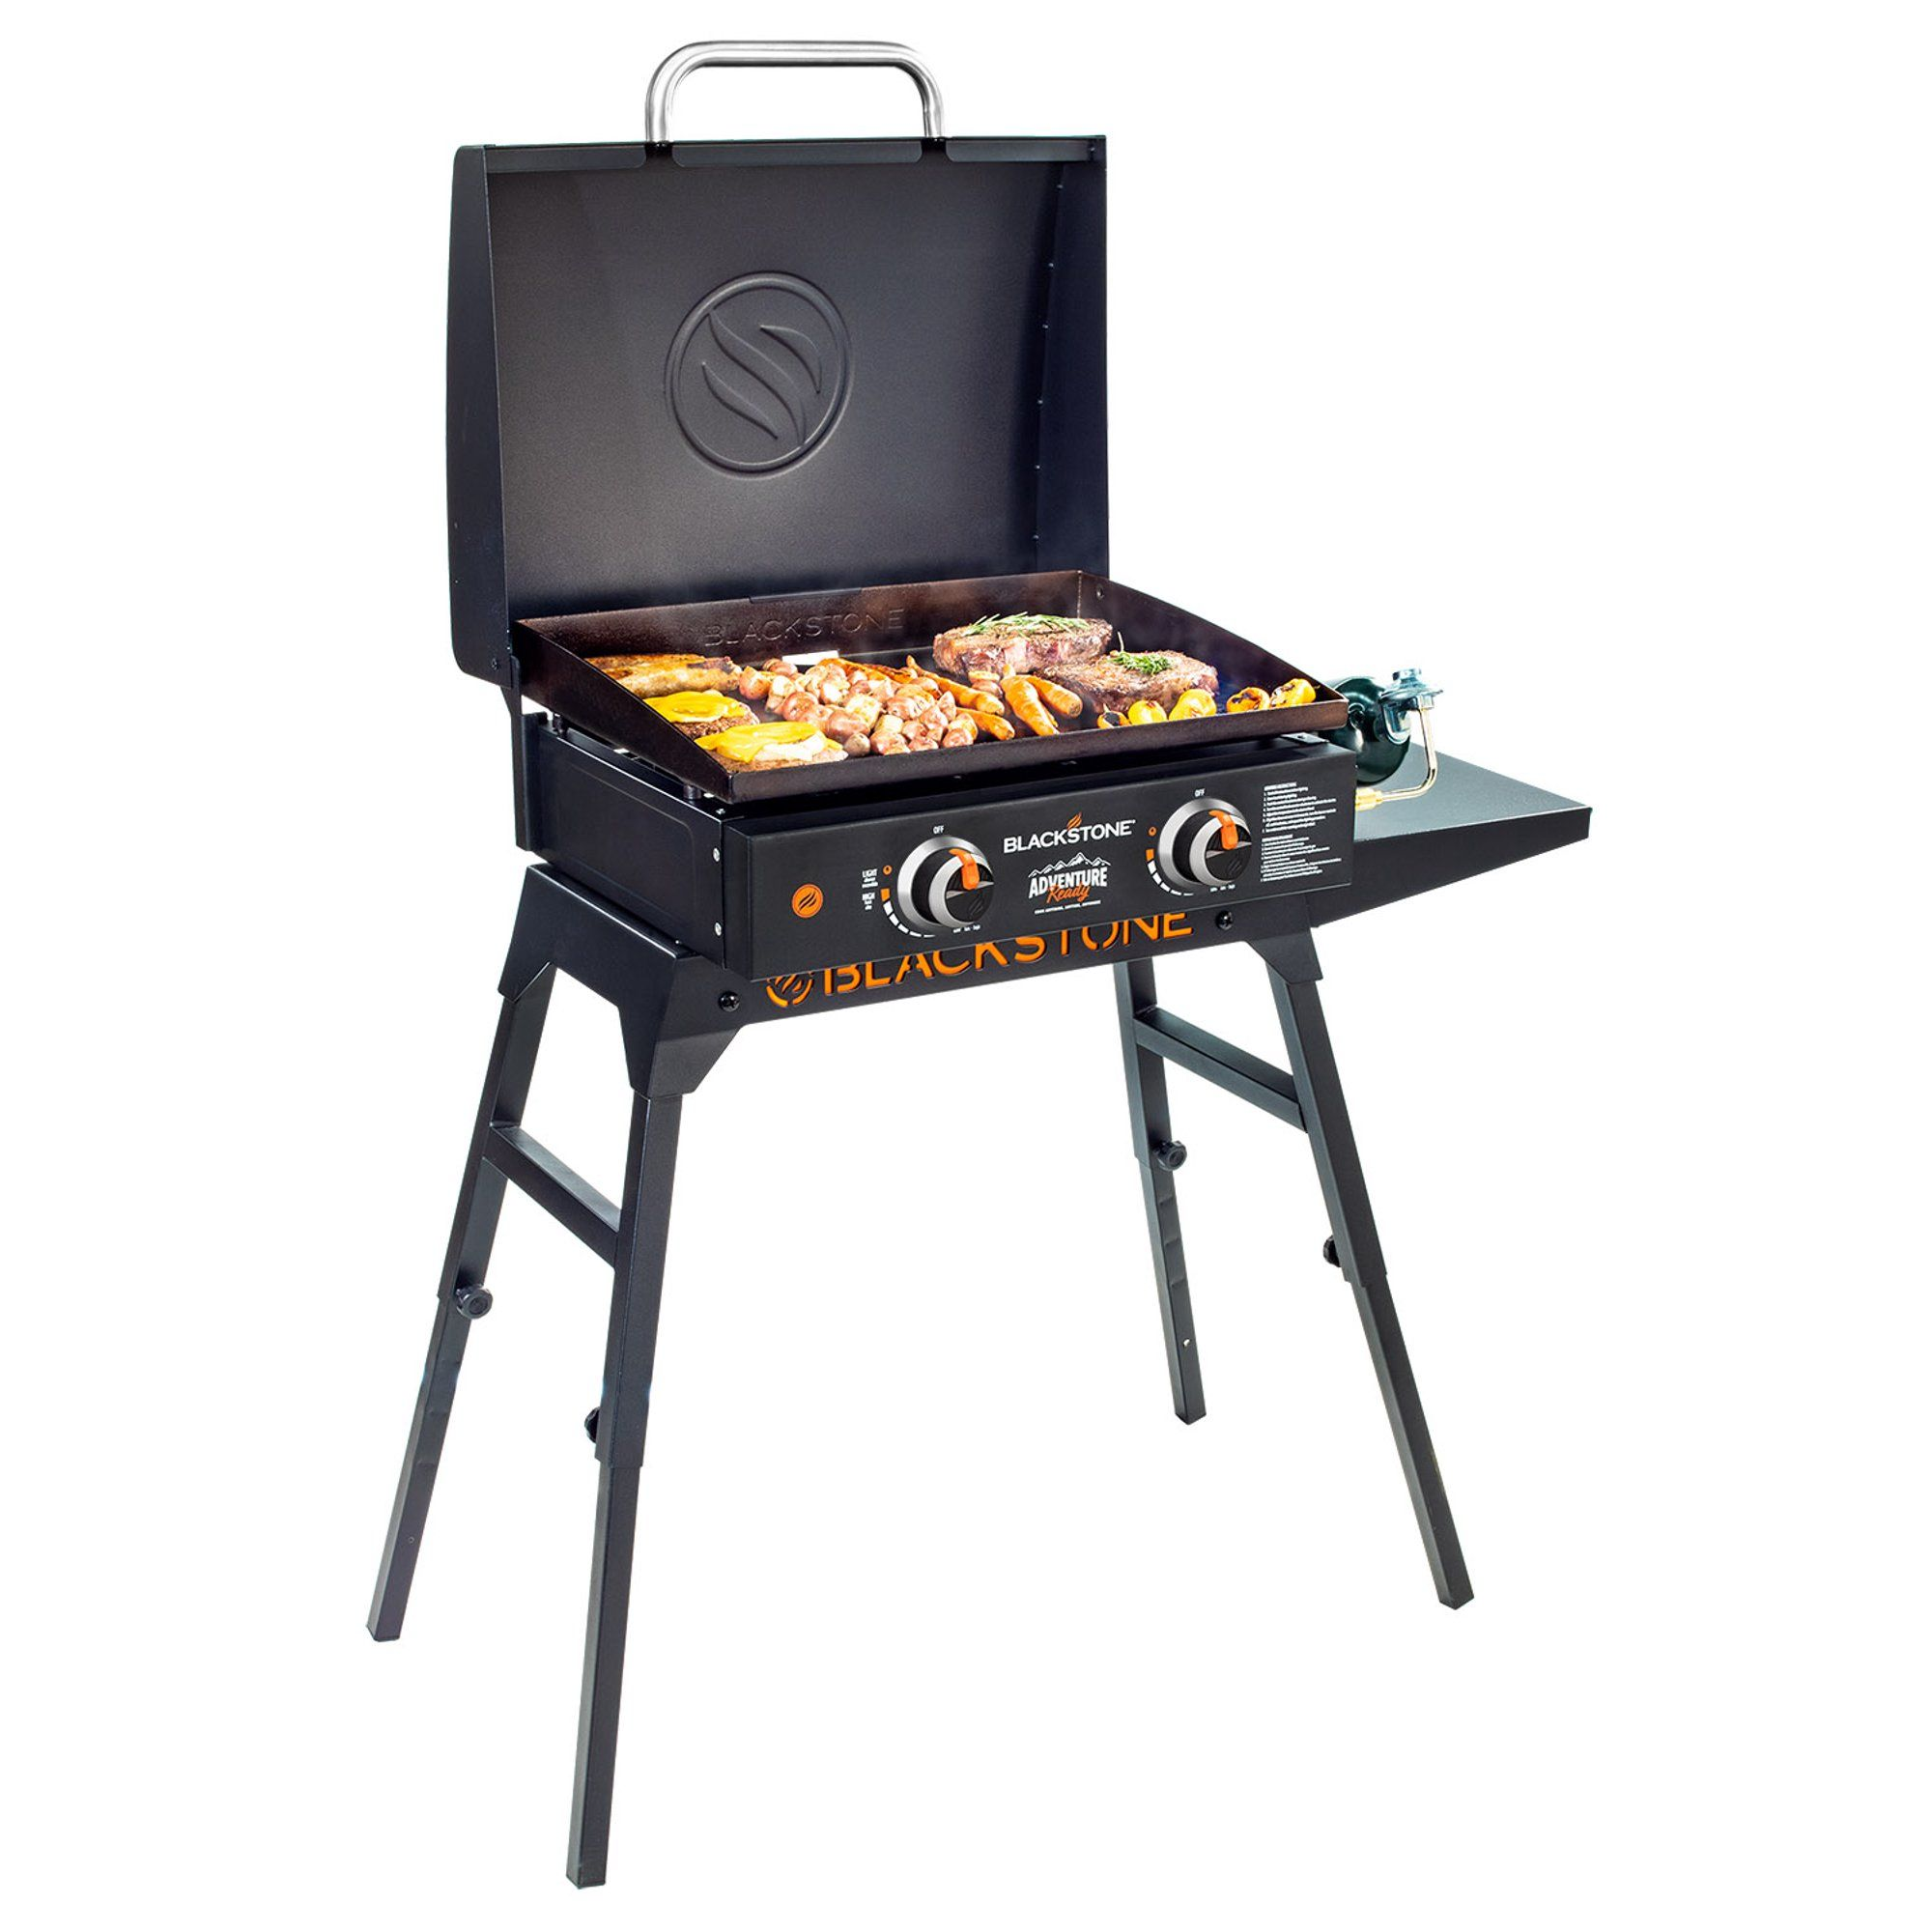 Blackstone Adventure Ready 22 Griddle With Hood Legs Adapter Hose Walmart Com In 2020 Cooking Accessories Blackstone Outdoor Cooking